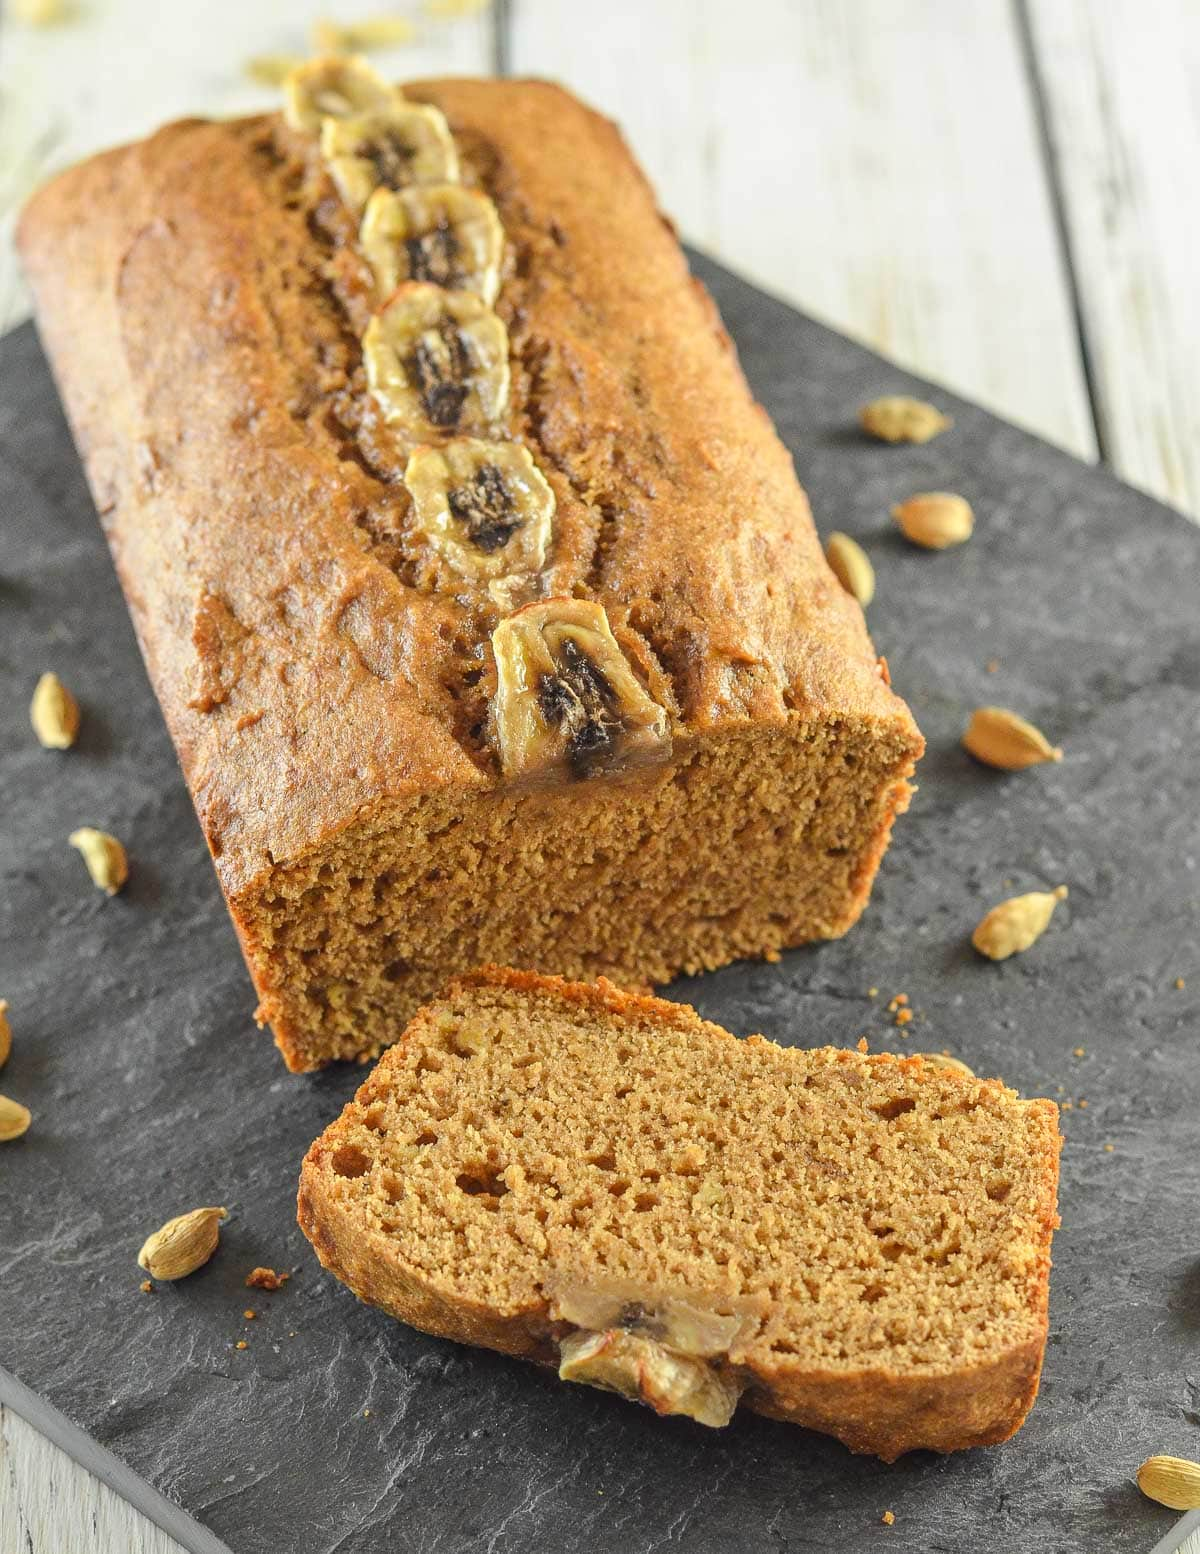 a loaf of banana bread with a slice cut